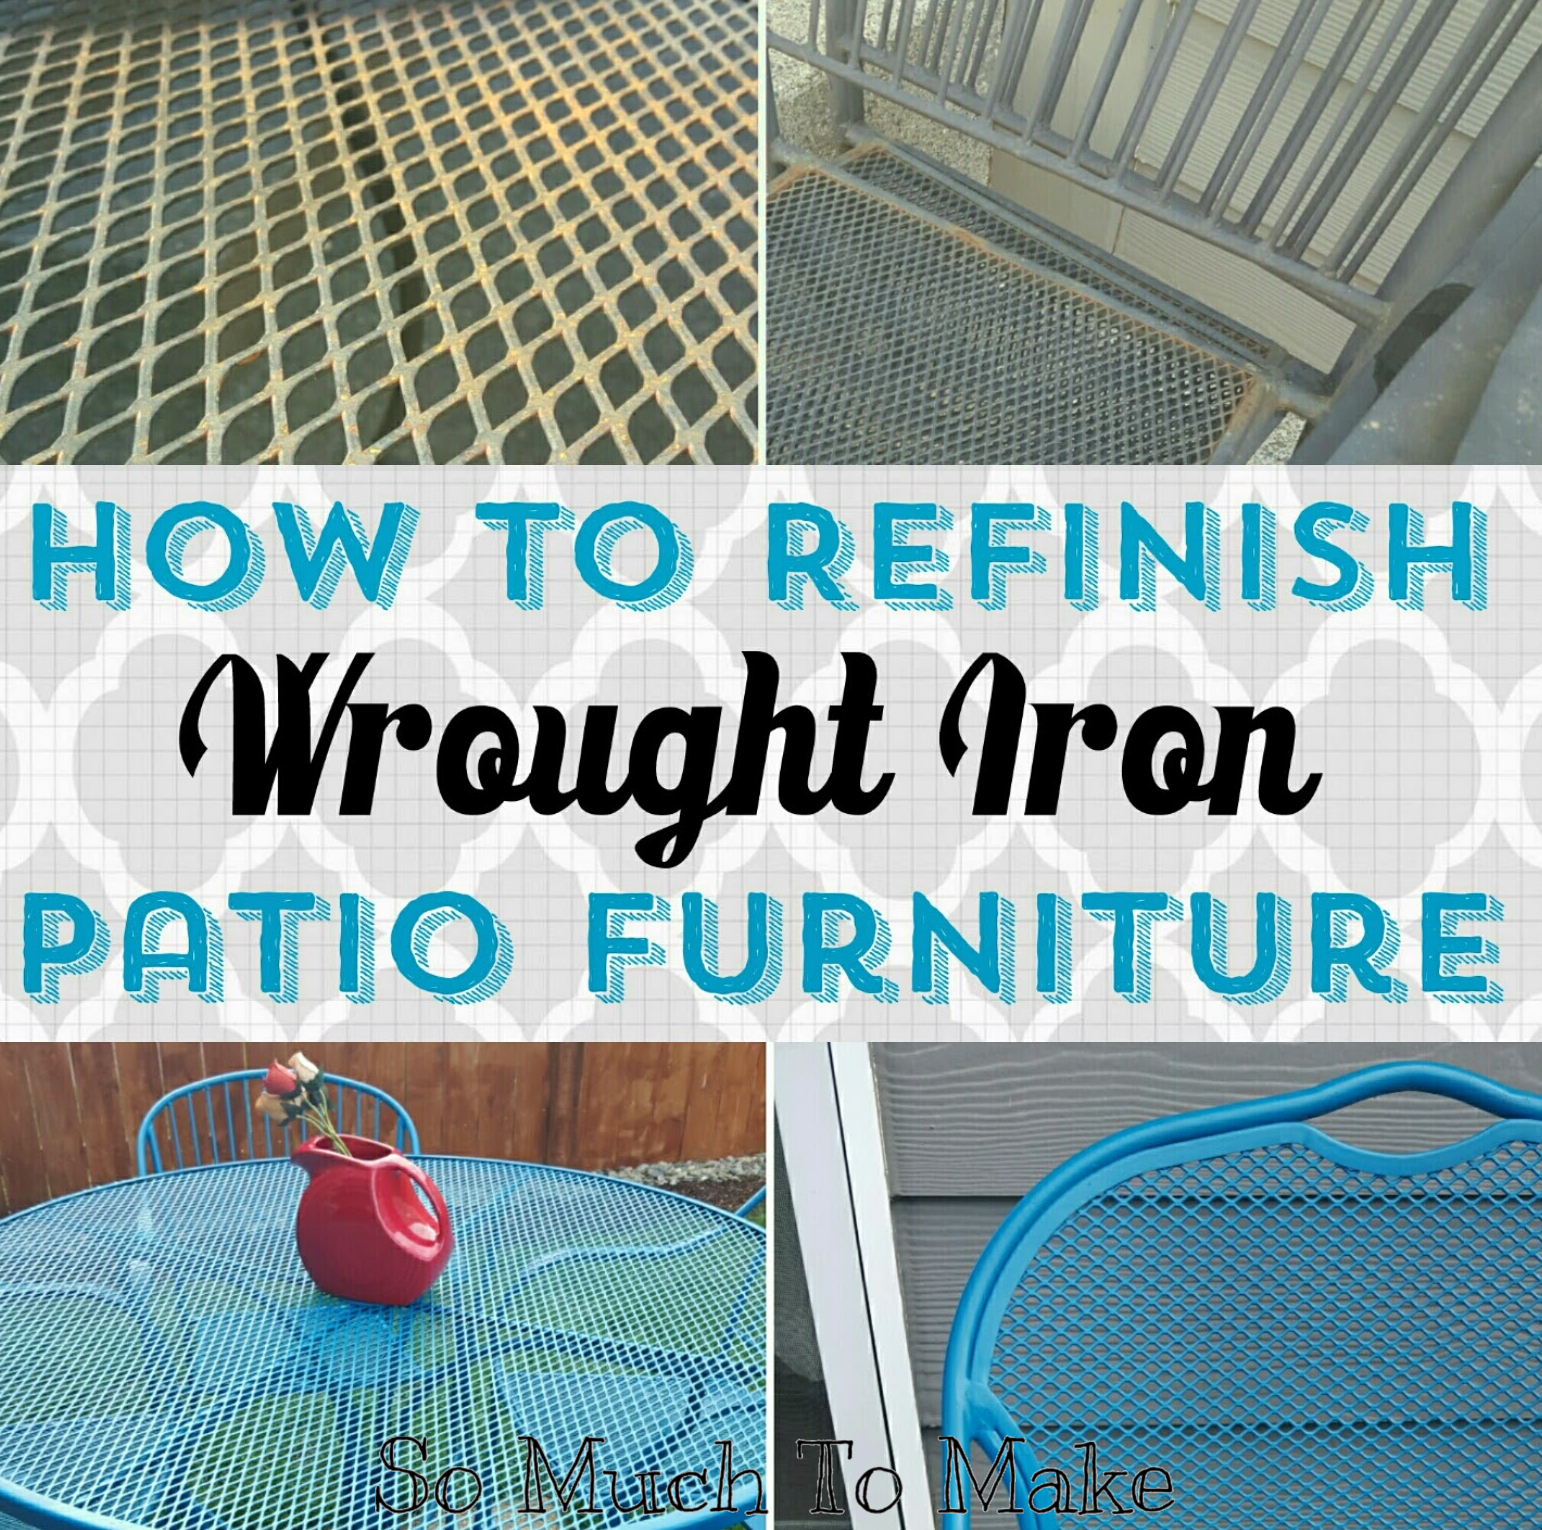 Friday, May 20, 2016 - How To Refinish Wrought Iron Patio Furniture So Much To Make